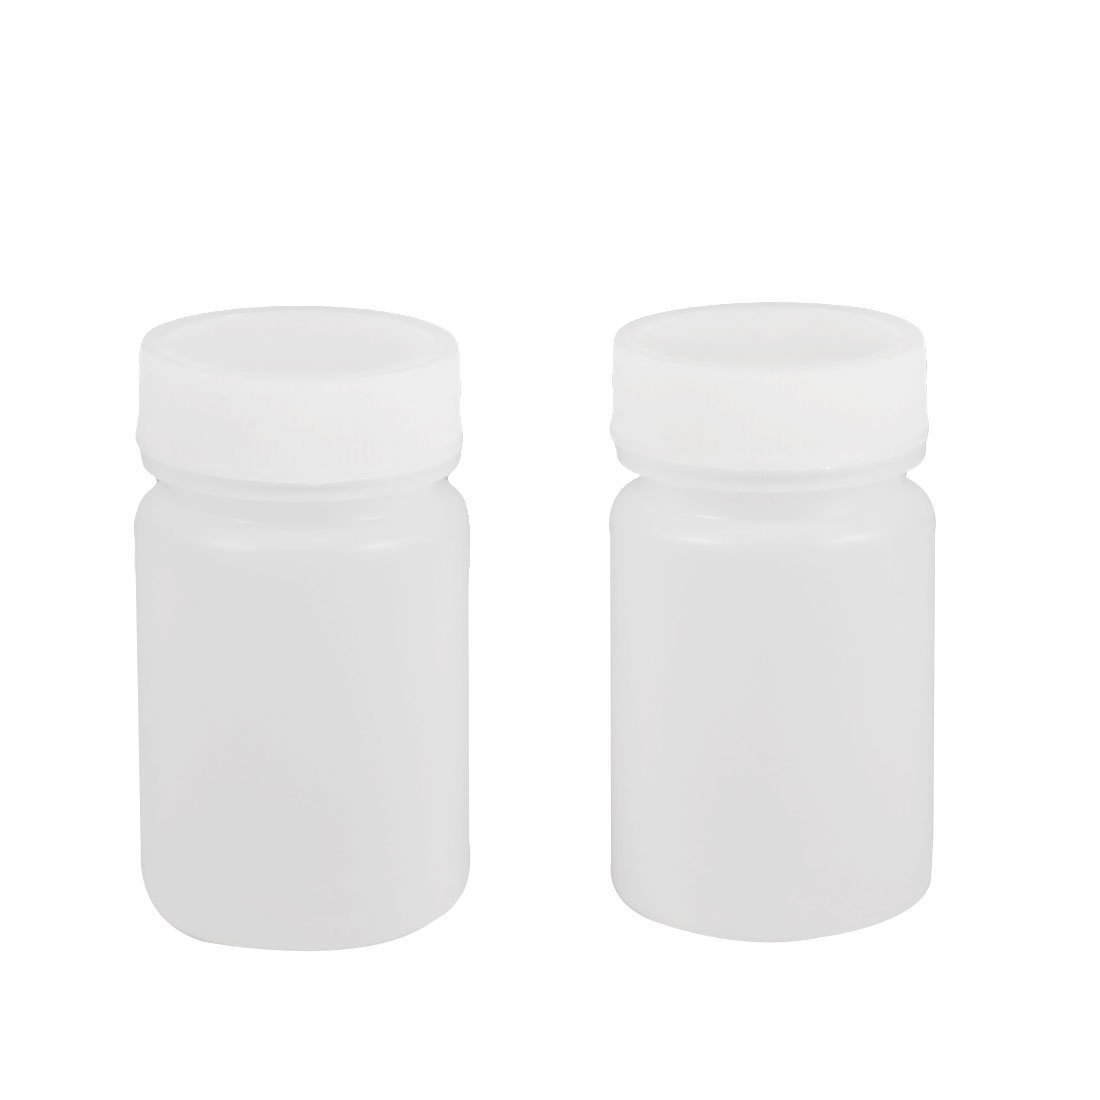 50ml White Plastic Cylinder Shaped Chemical Reagent Bottles 2 Pcs Sourcingmap a12101800ux0407